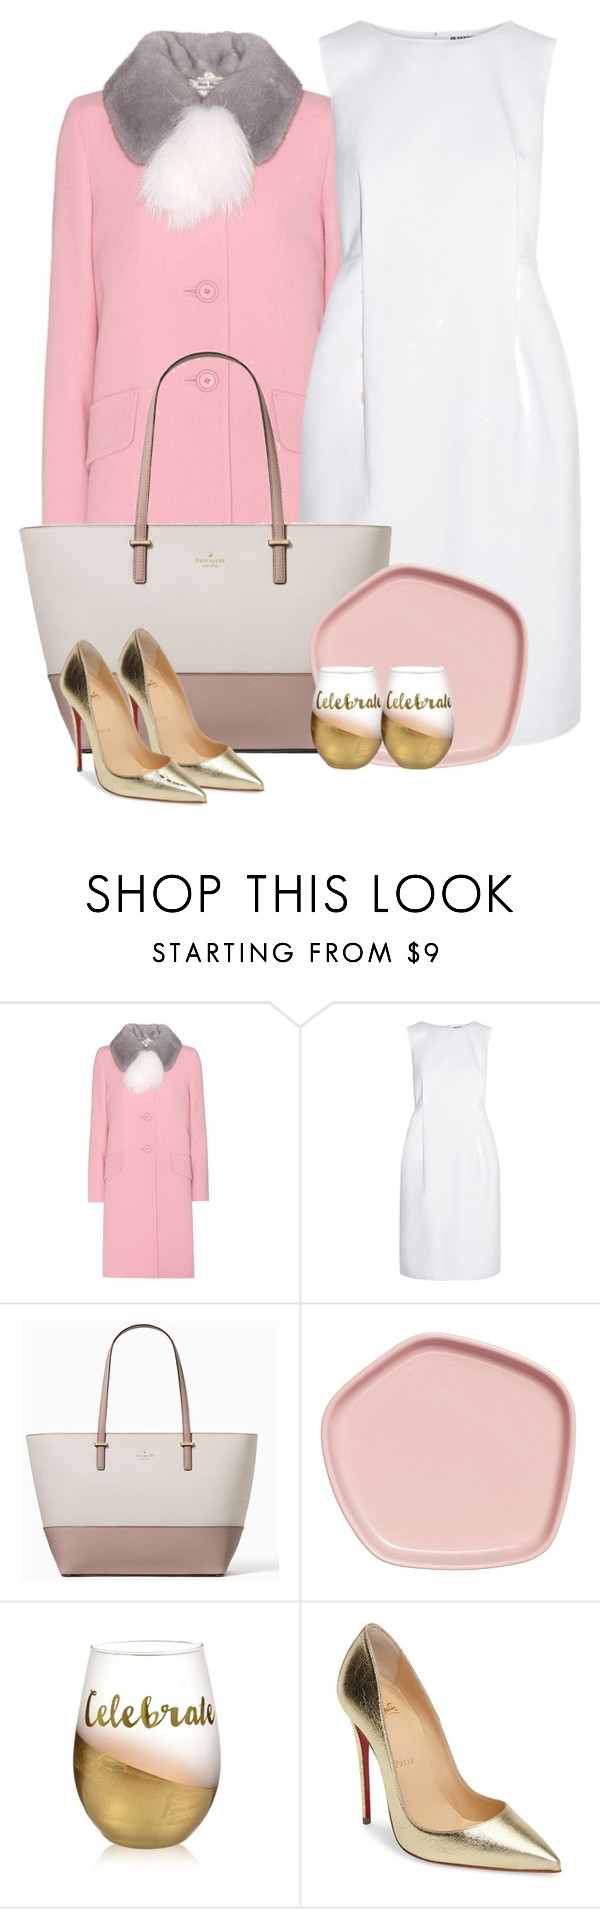 """Celebrate"" by cherieaustin ❤ liked on Polyvore featuring Miu Miu, Jil Sander, Kate Spade and Christian Louboutin"